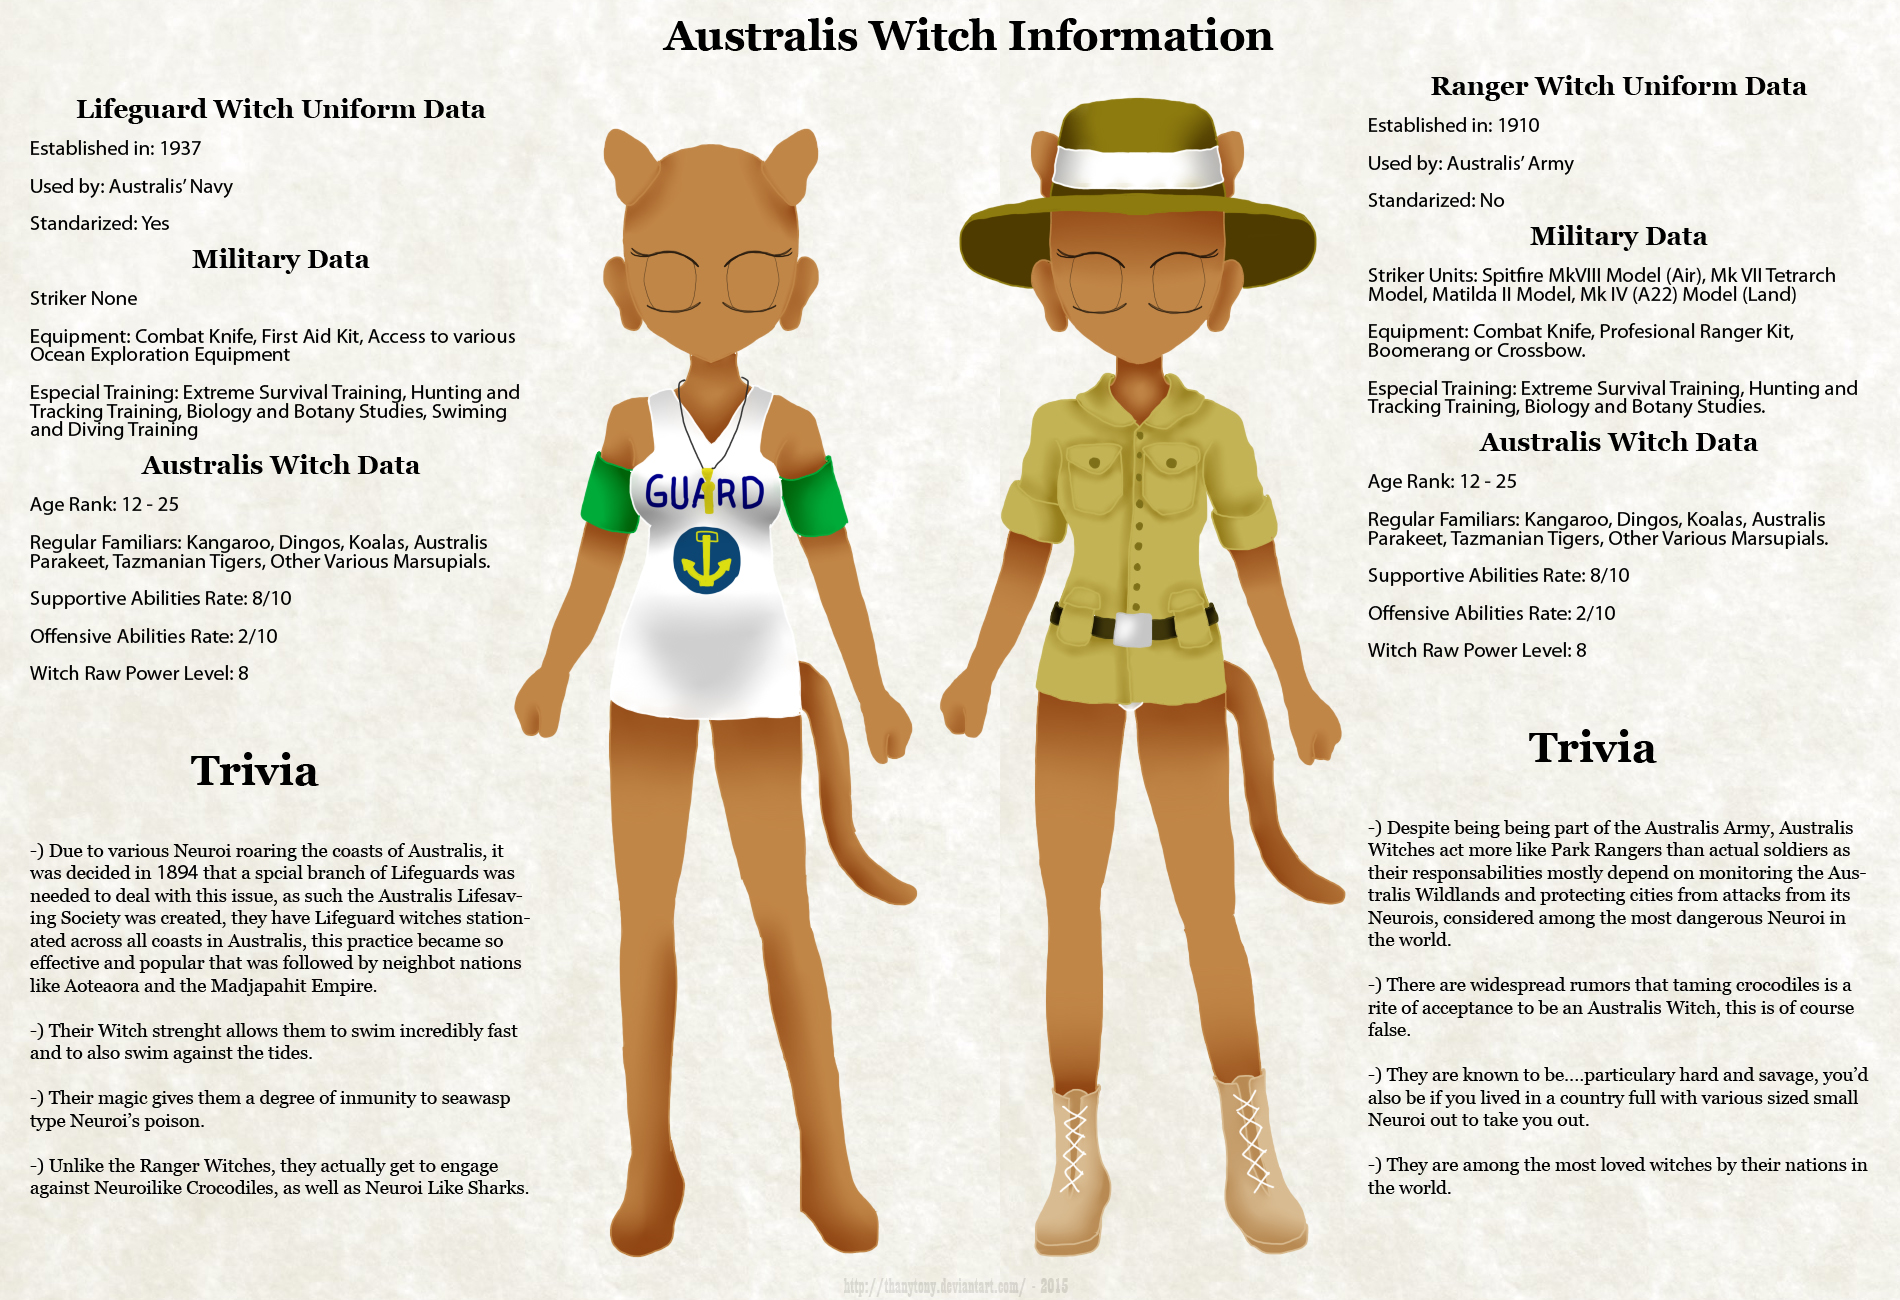 SW Witch Data: Australis Witches by ThanyTony